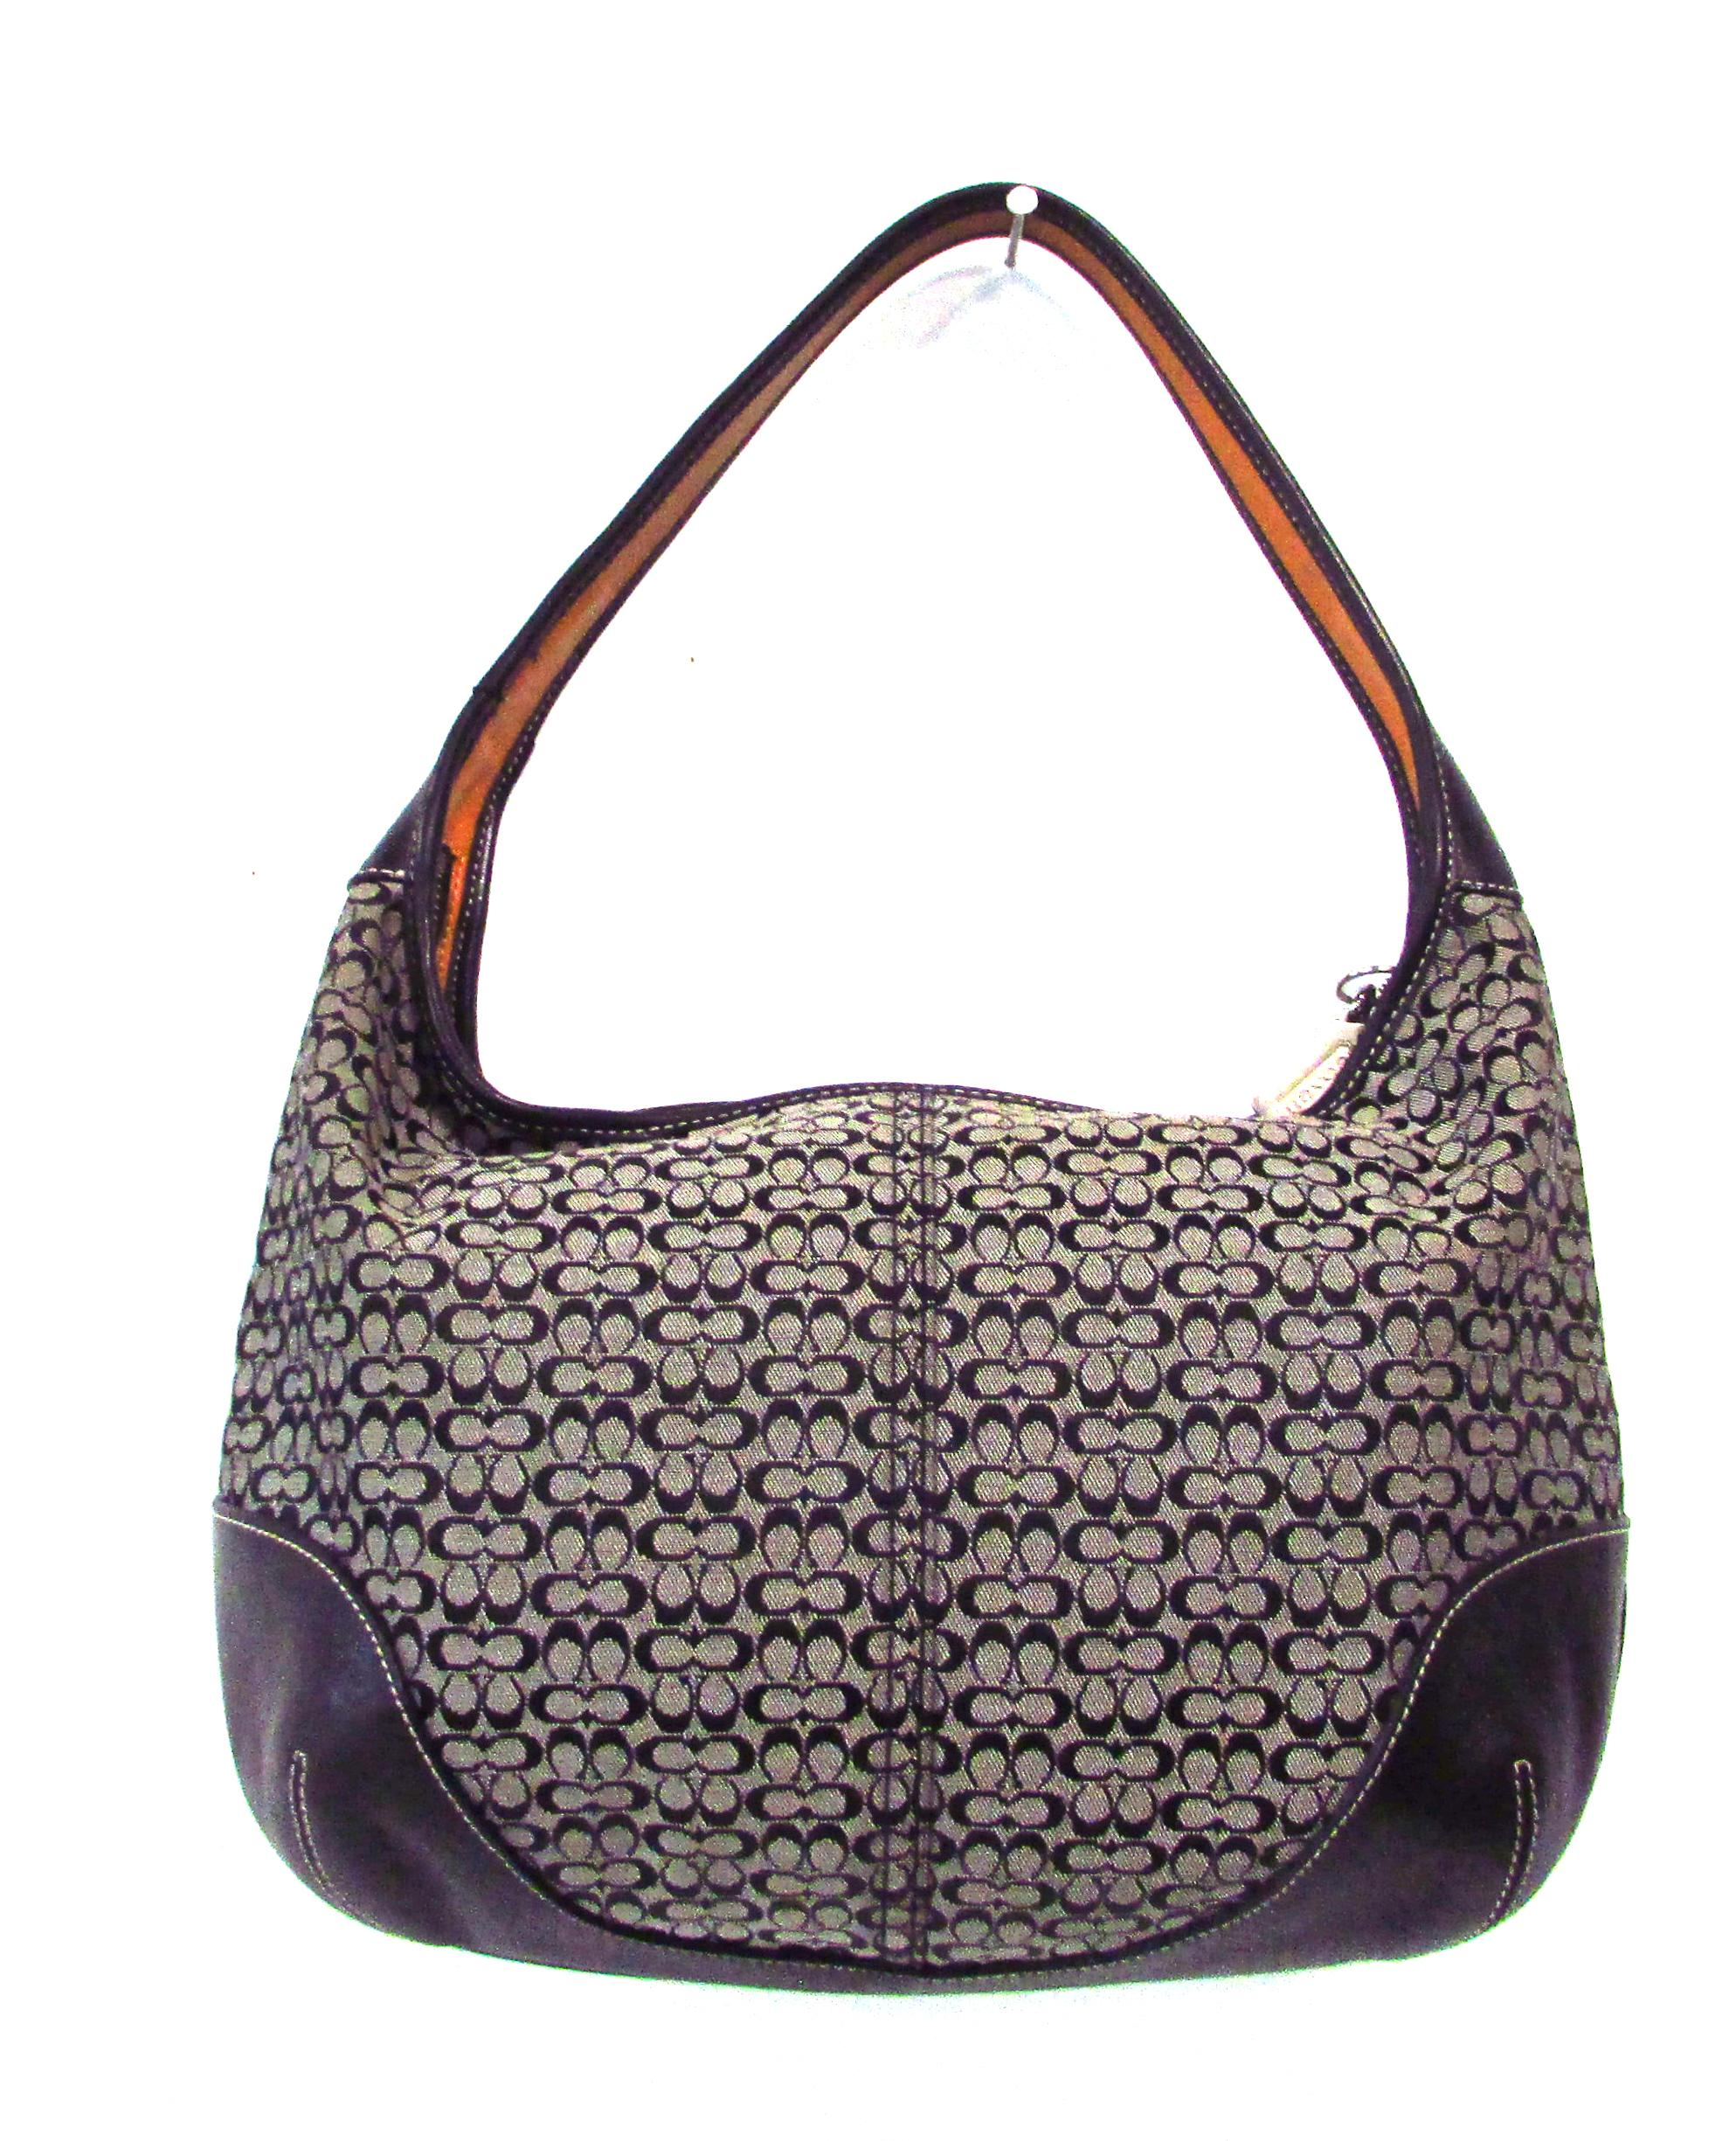 Coach Ergo M2k-6617 Signature Leather Canvas Hobo Bag | Hobos on Sale